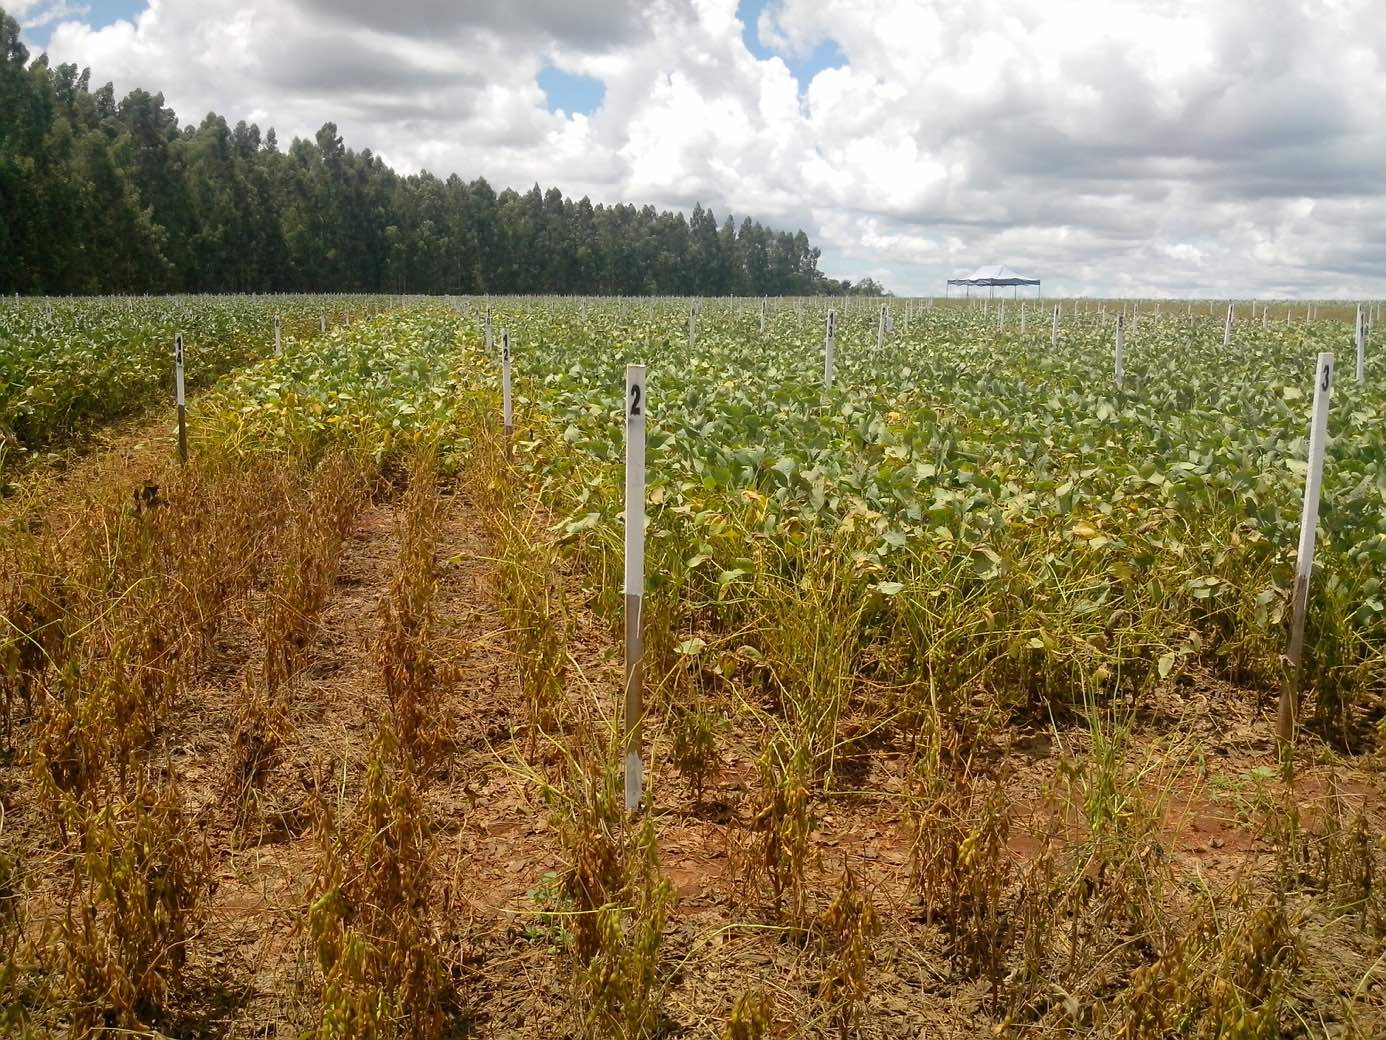 Fungicide field trial plots close to Dourados (Mato Grosso do Sul, Brazil). Untreated control plot in the foreground, with soybean plants showing a high level of infestation with Phakopsora pachyrhizi (Picture by S. Lamprecht, Bayer Division Crop Science).